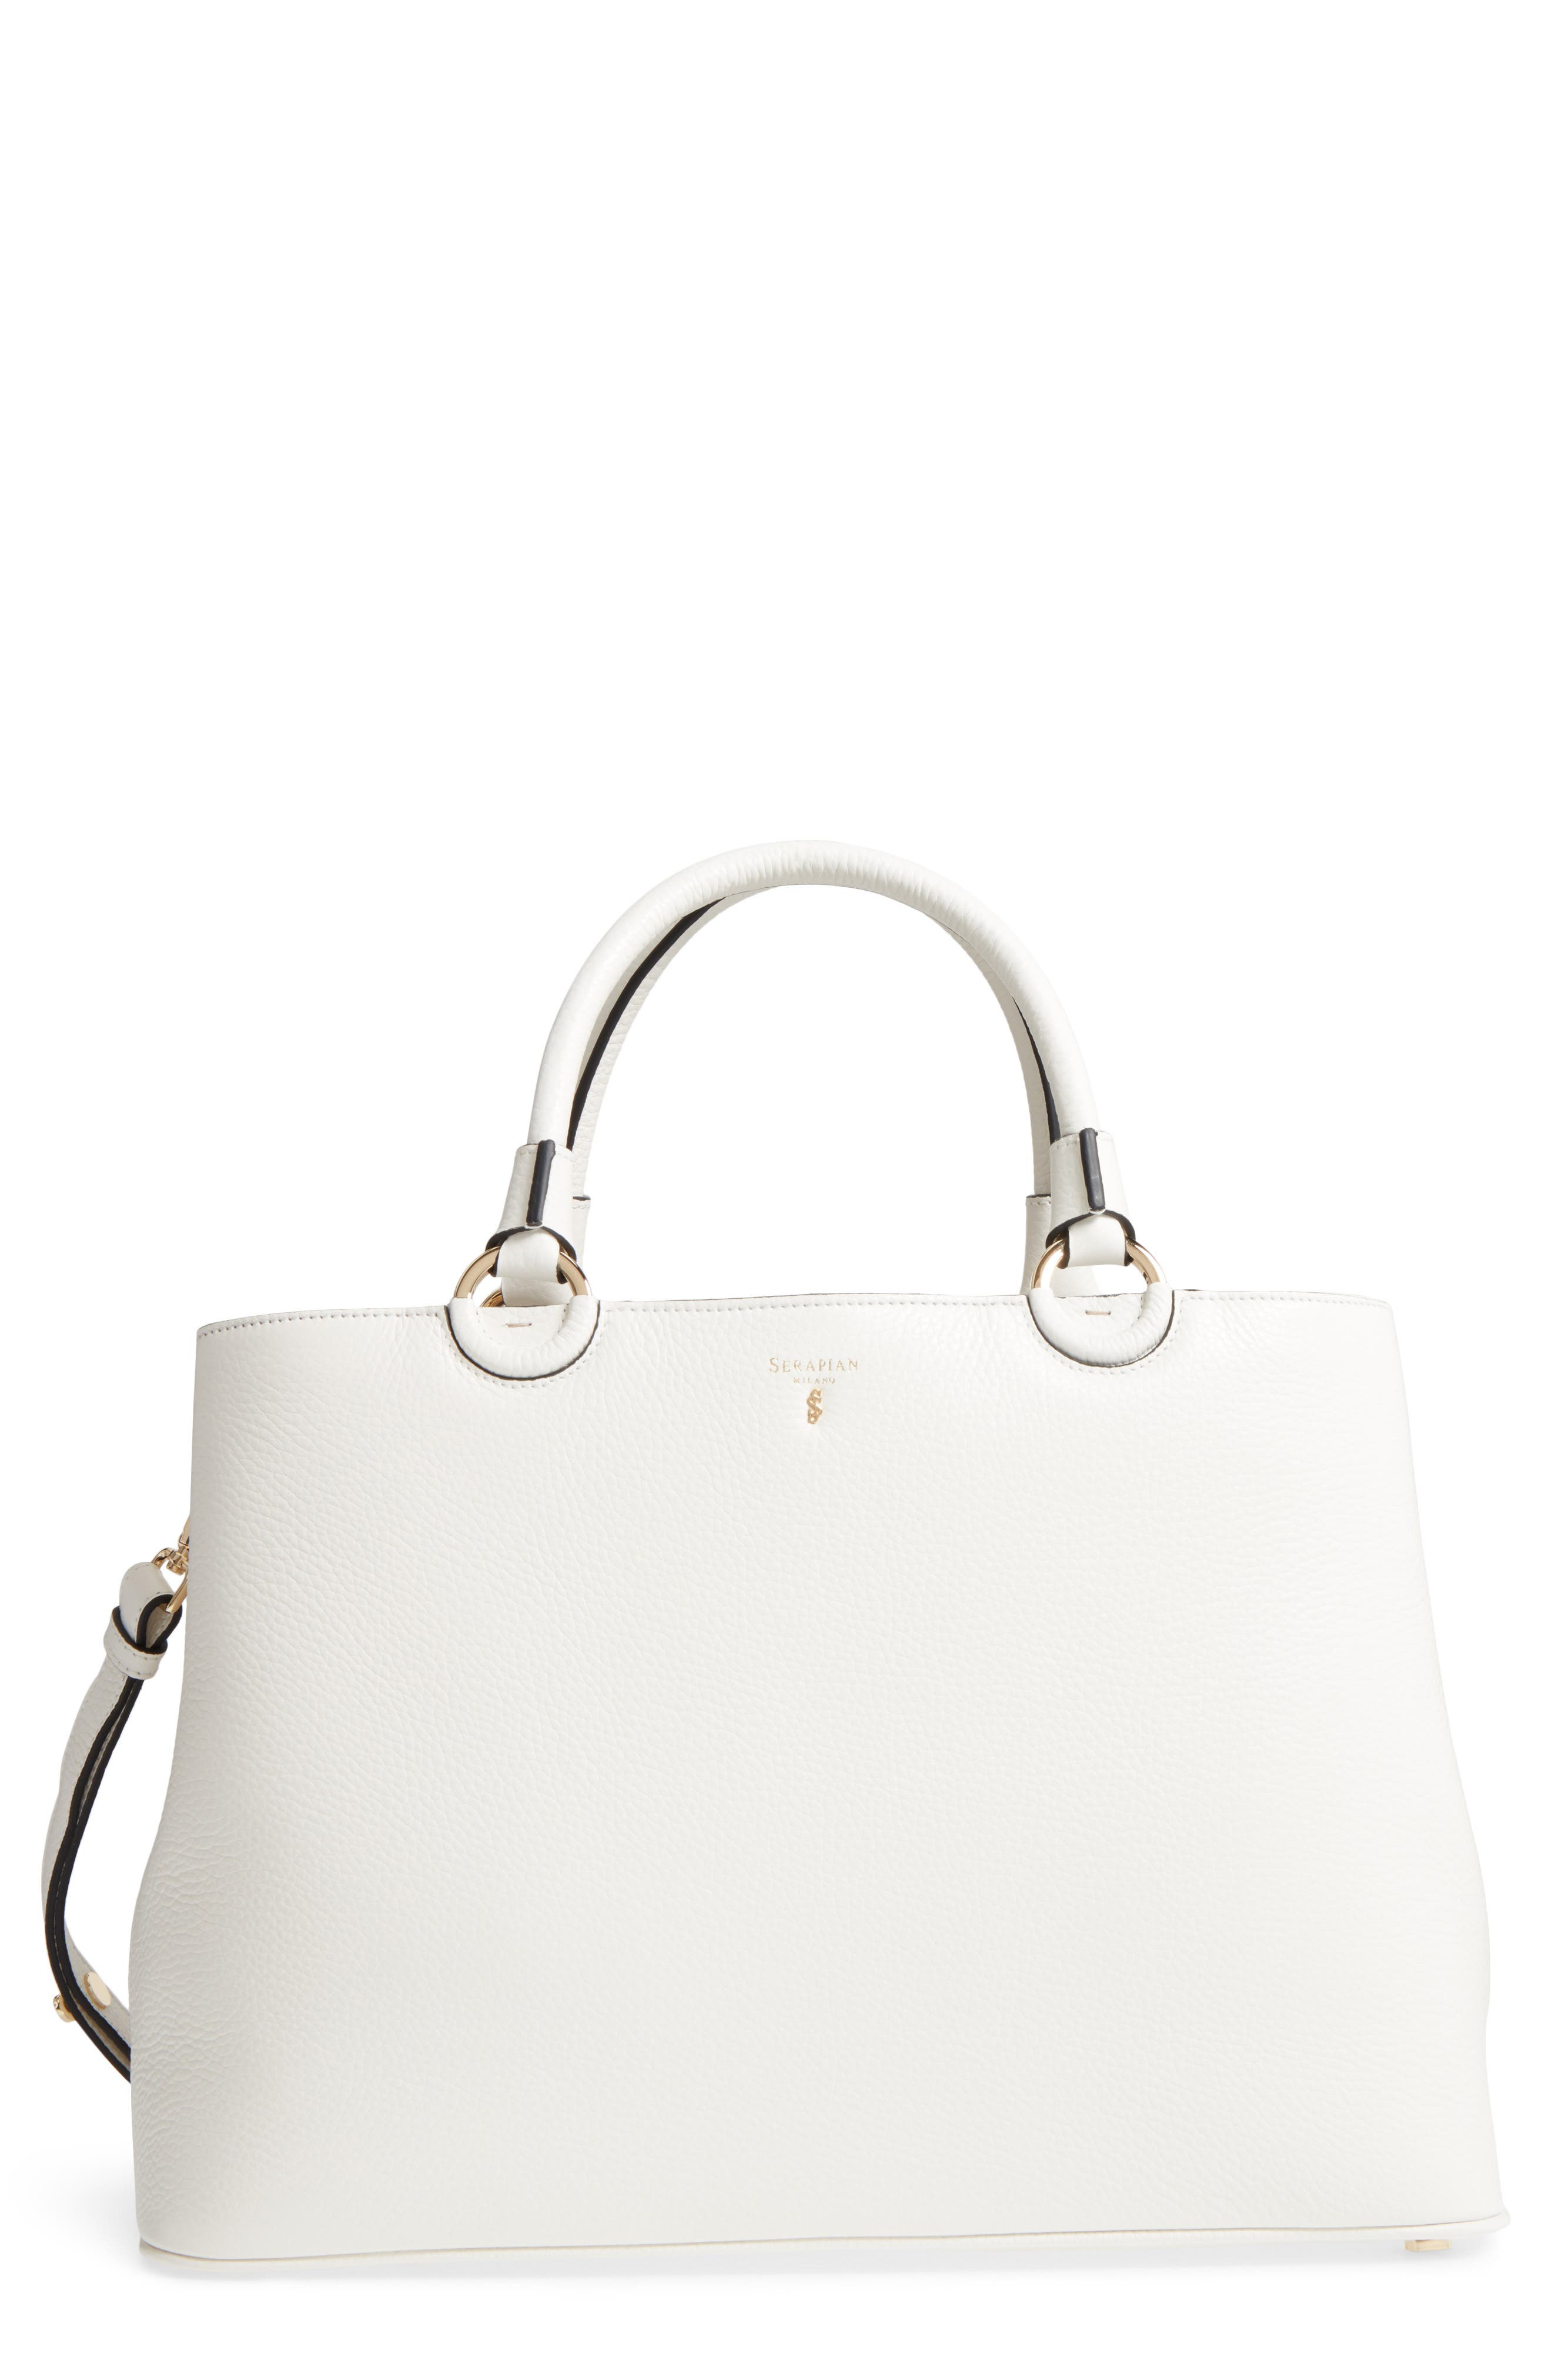 Veronica Cachemire Leather Tote,                         Main,                         color, New Milk